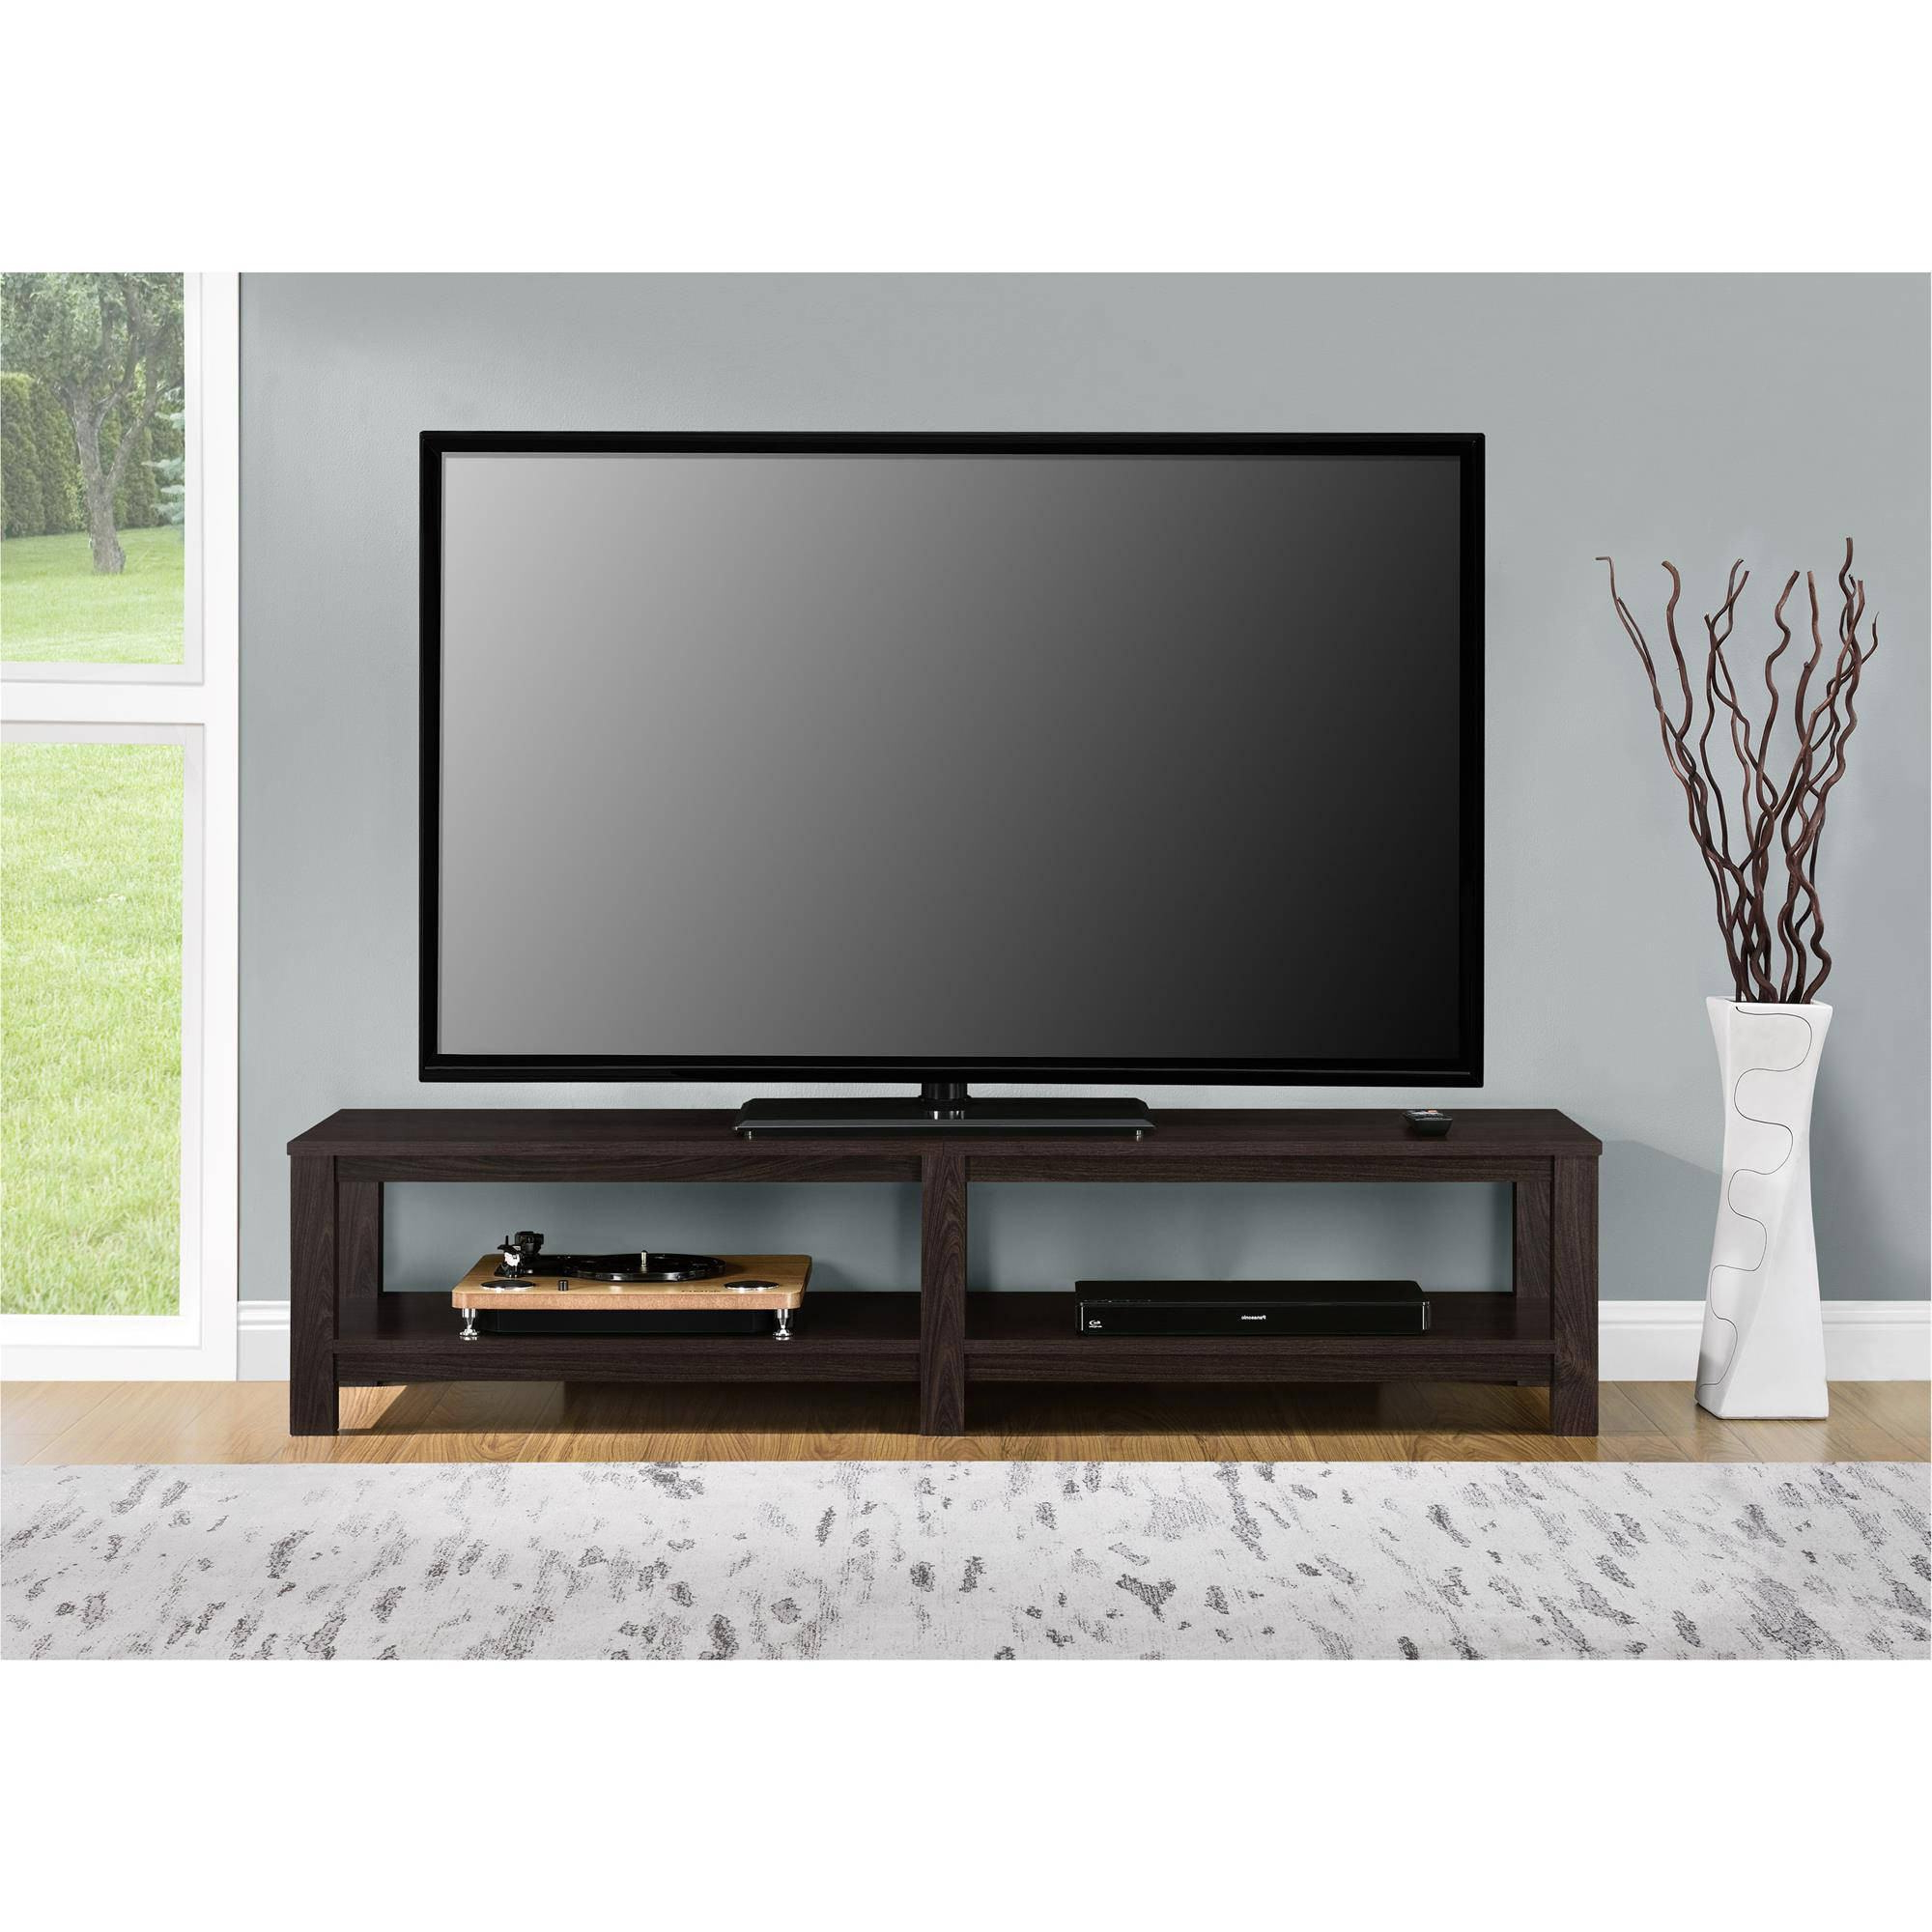 13 Stunning 65 Inch Tv Stand For Your New Living Room In Jaxon 65 Inch Tv Stands (View 12 of 20)